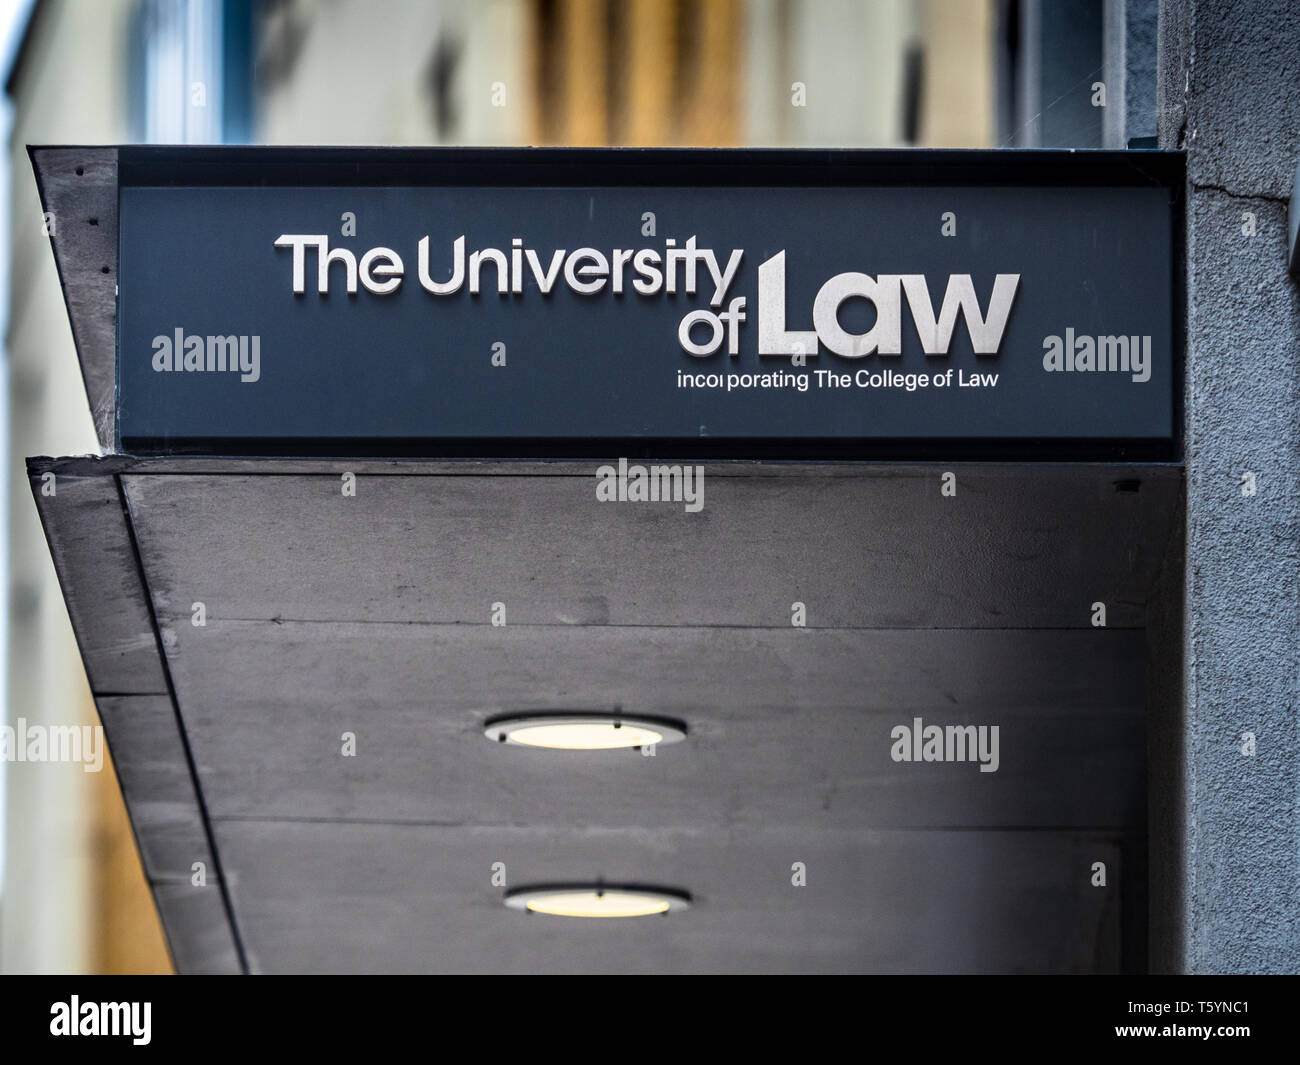 University of Law London - a specialised provider of legal education Founded in 1962 as the College of Law, it is the UK's largest law school. - Stock Image